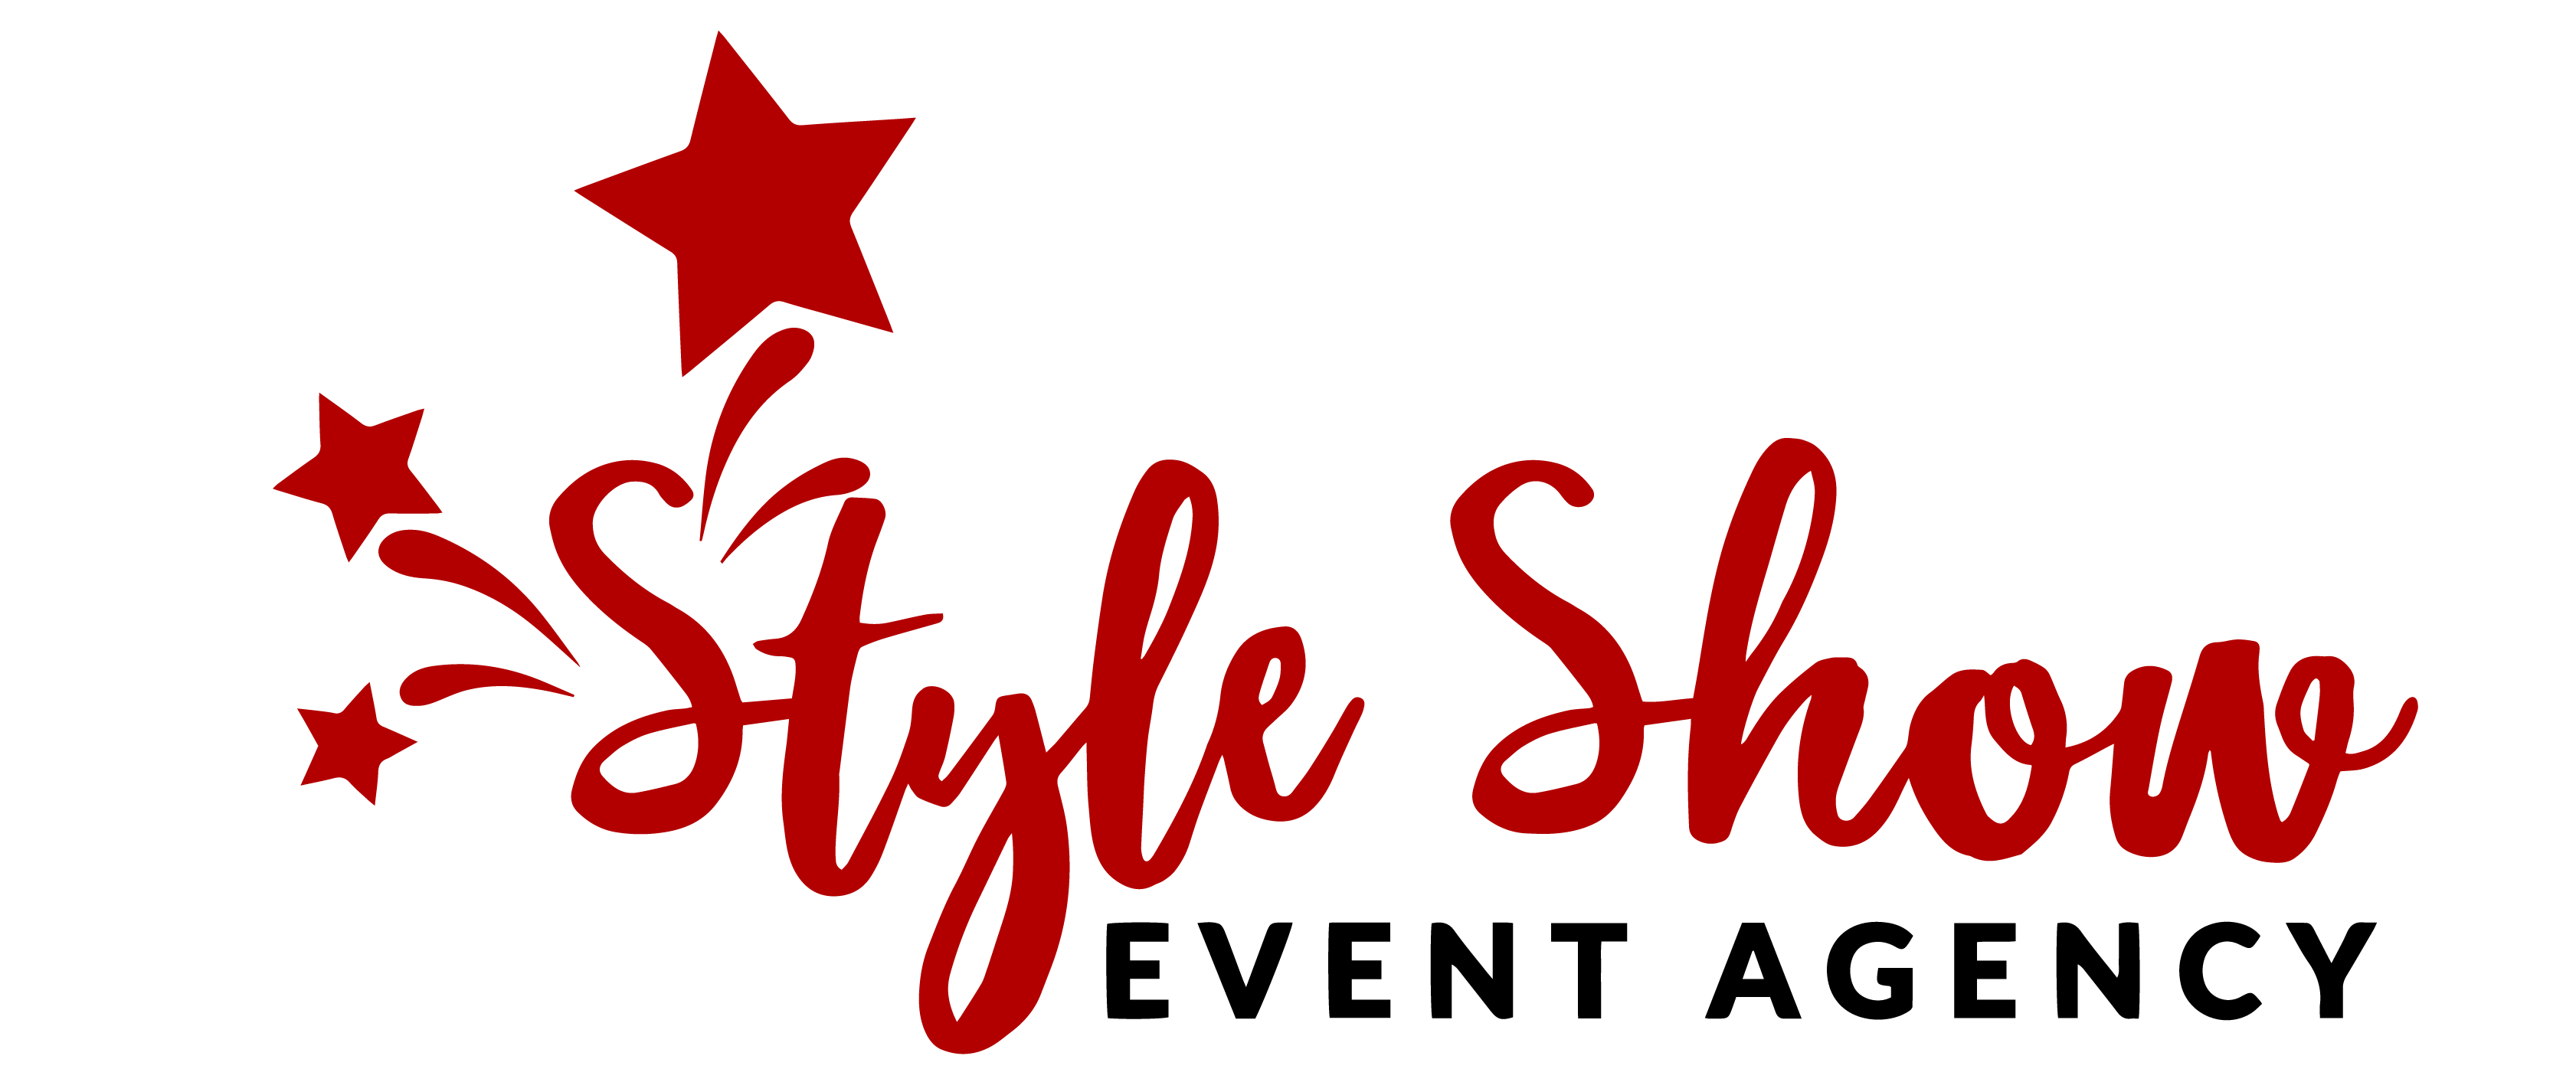 Style show